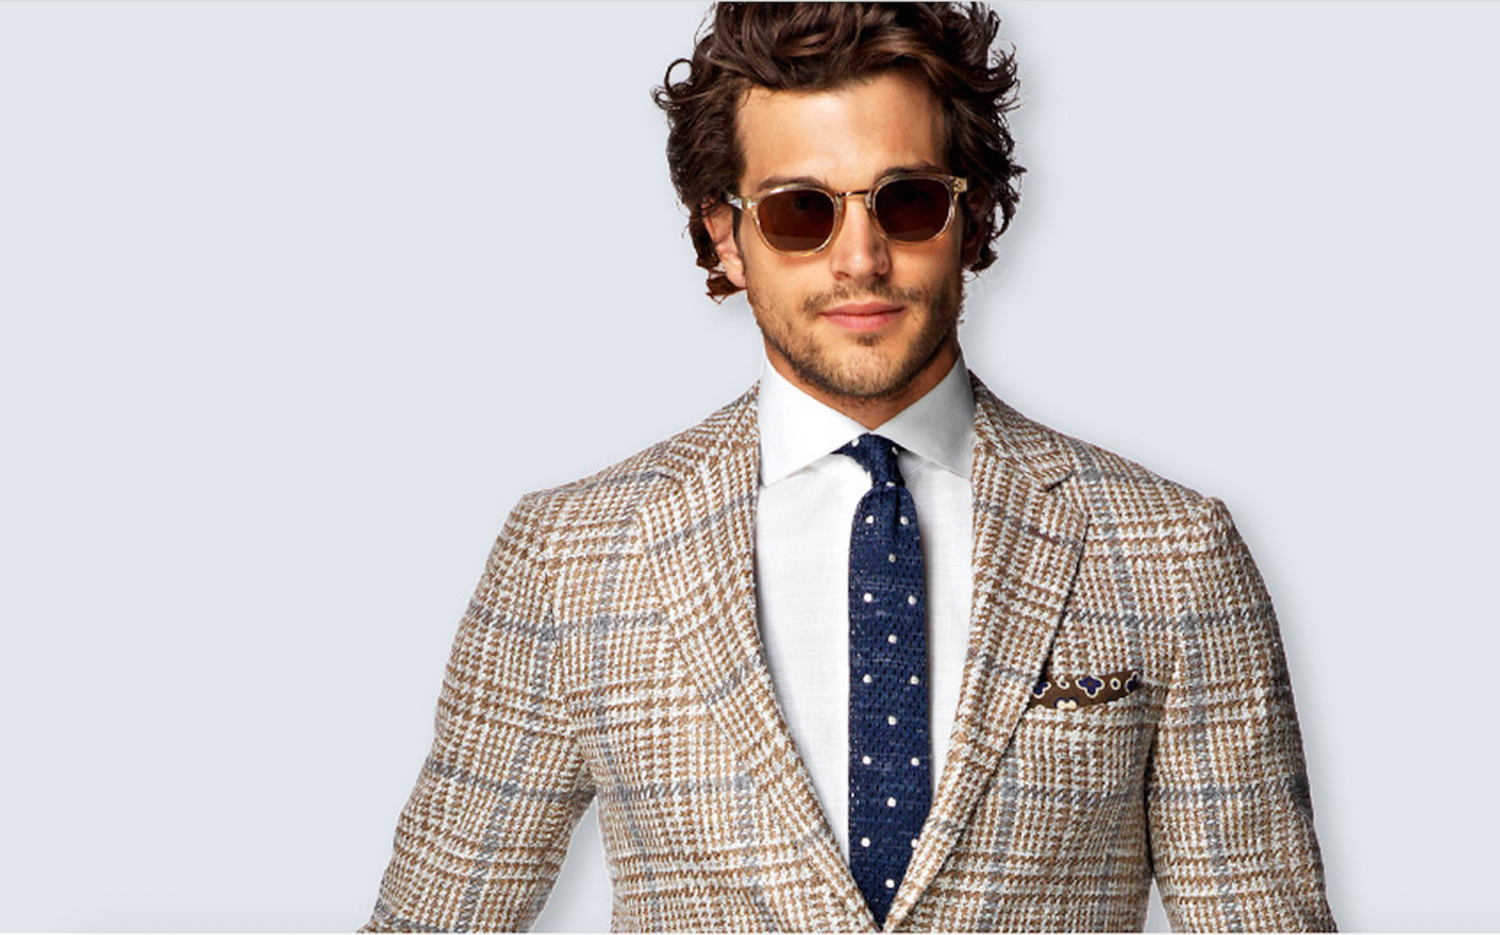 Get Suited at NYC's Suit Supply